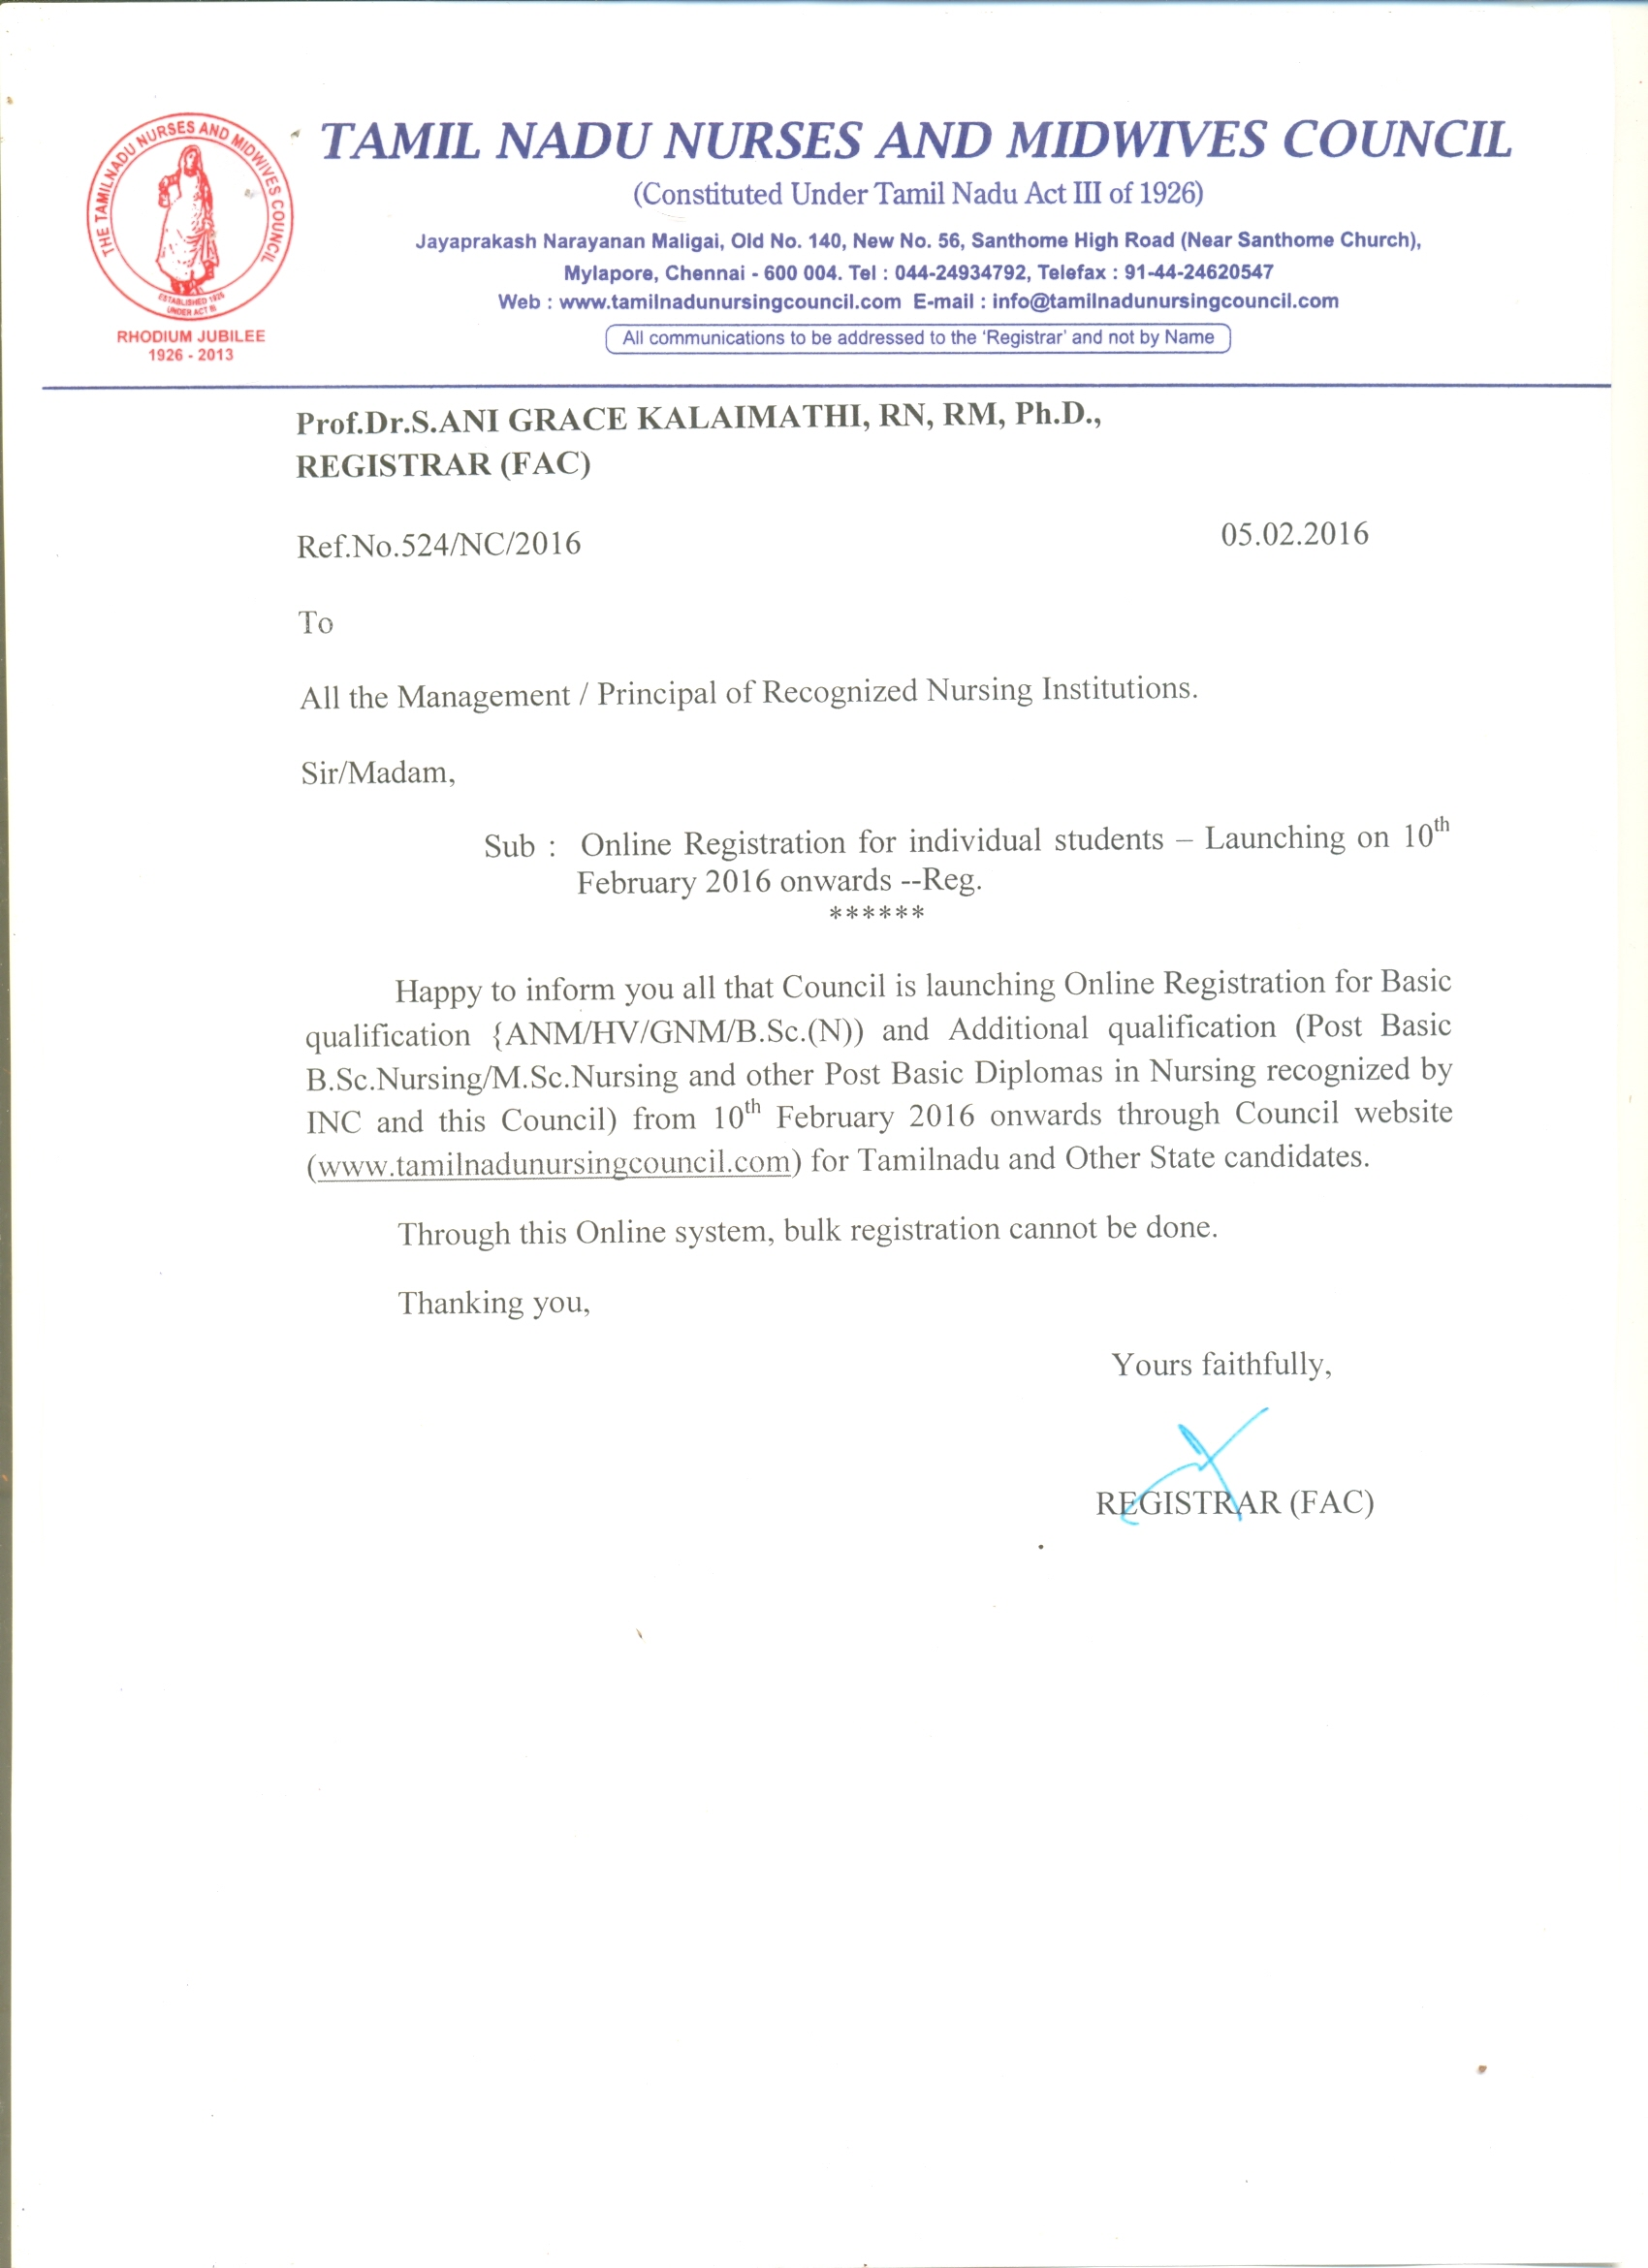 Tamil nadu nurses midwives council latest circular xflitez Choice Image